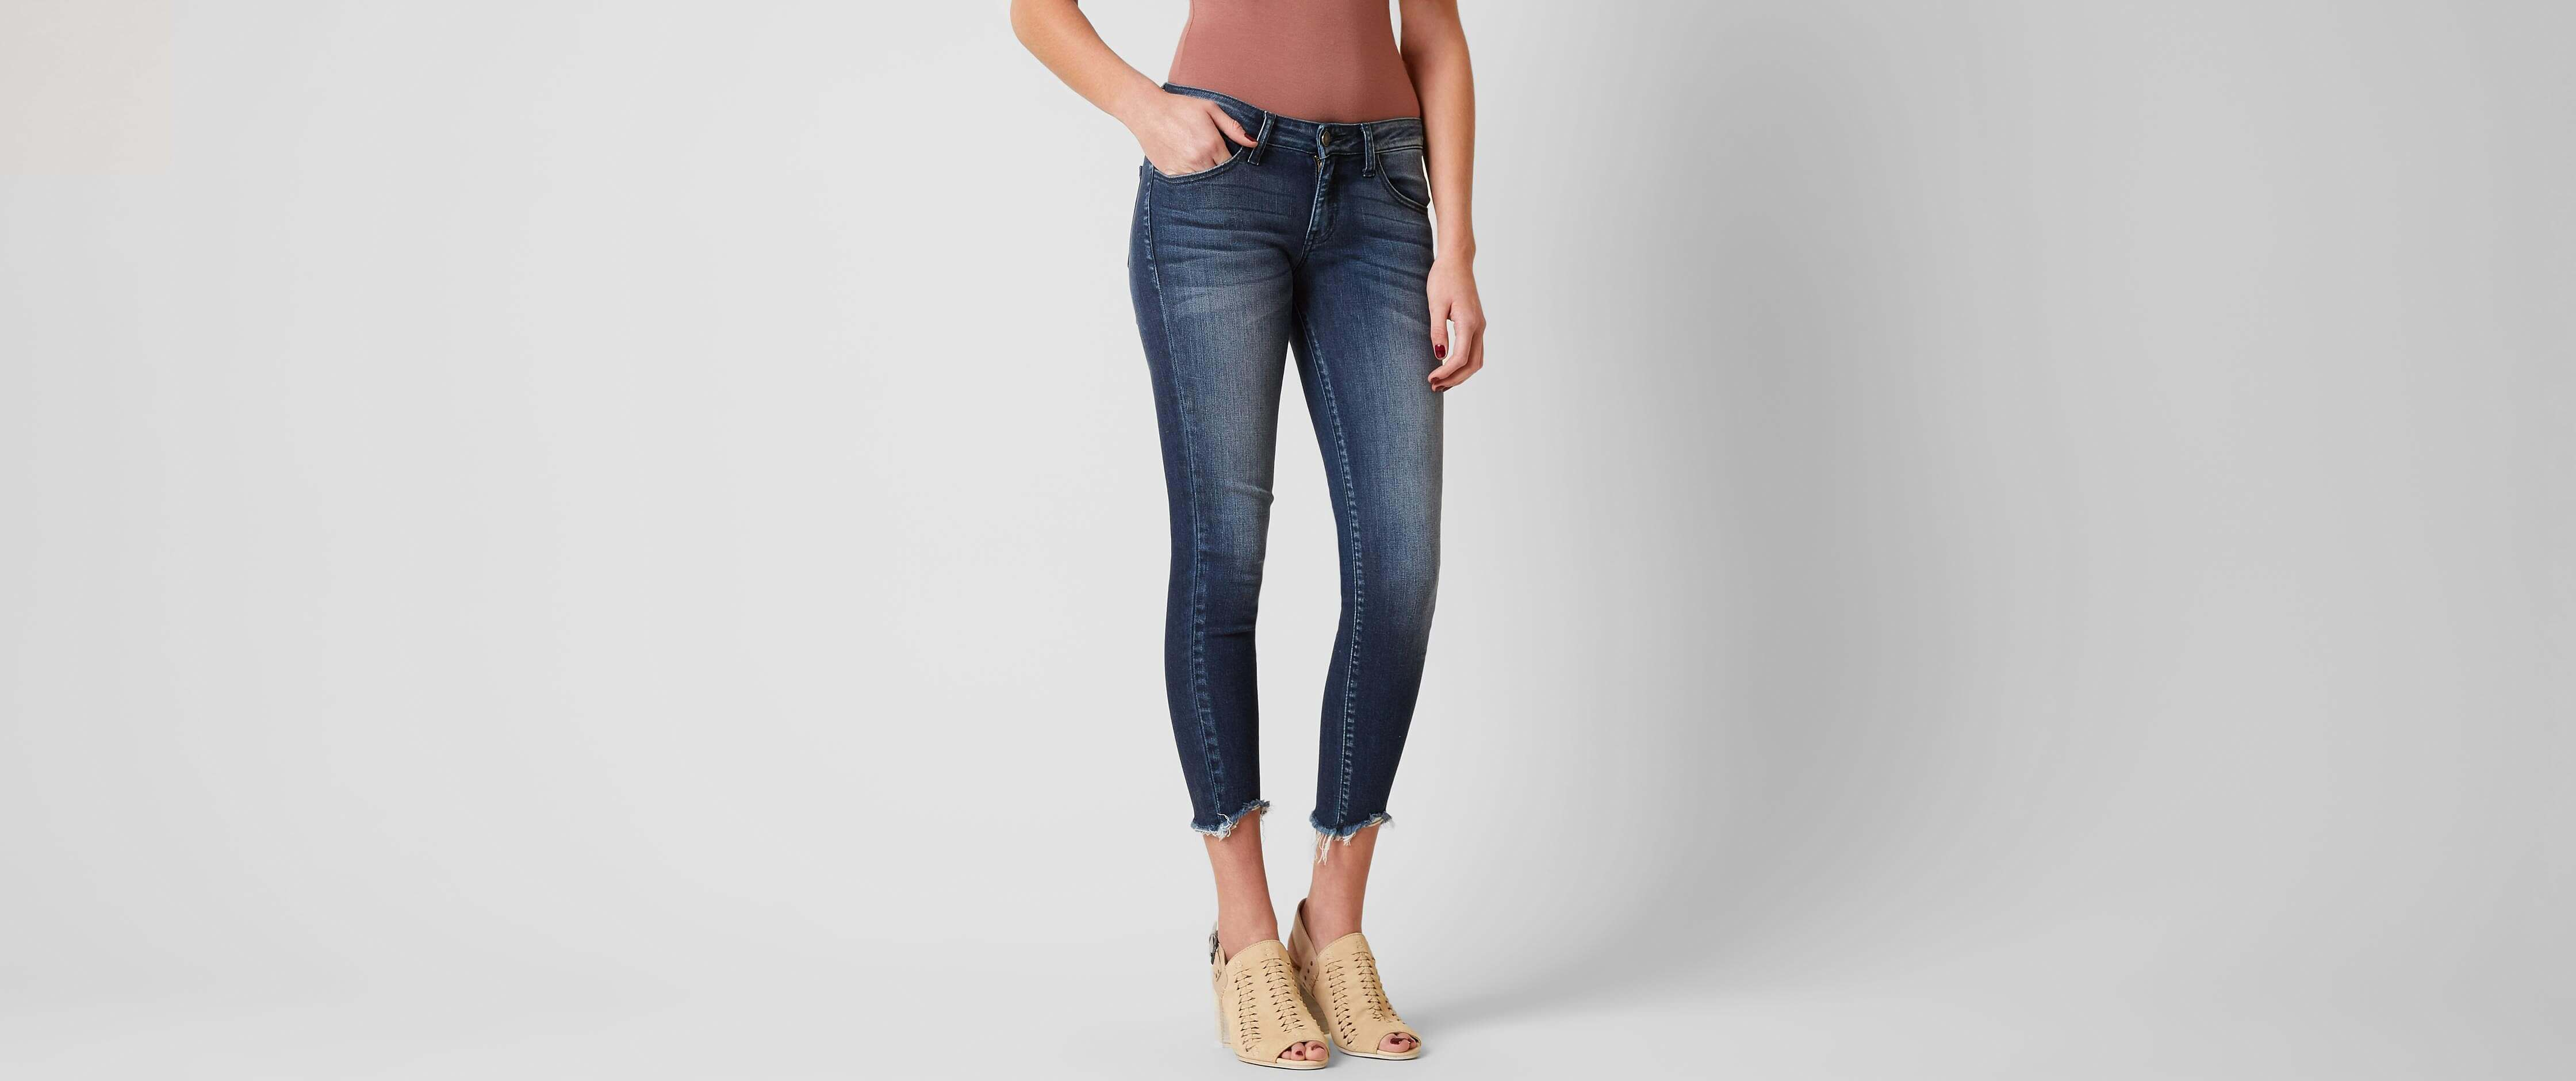 Nice KanCan Low Rise Ankle Skinny Stretch Jean supplier